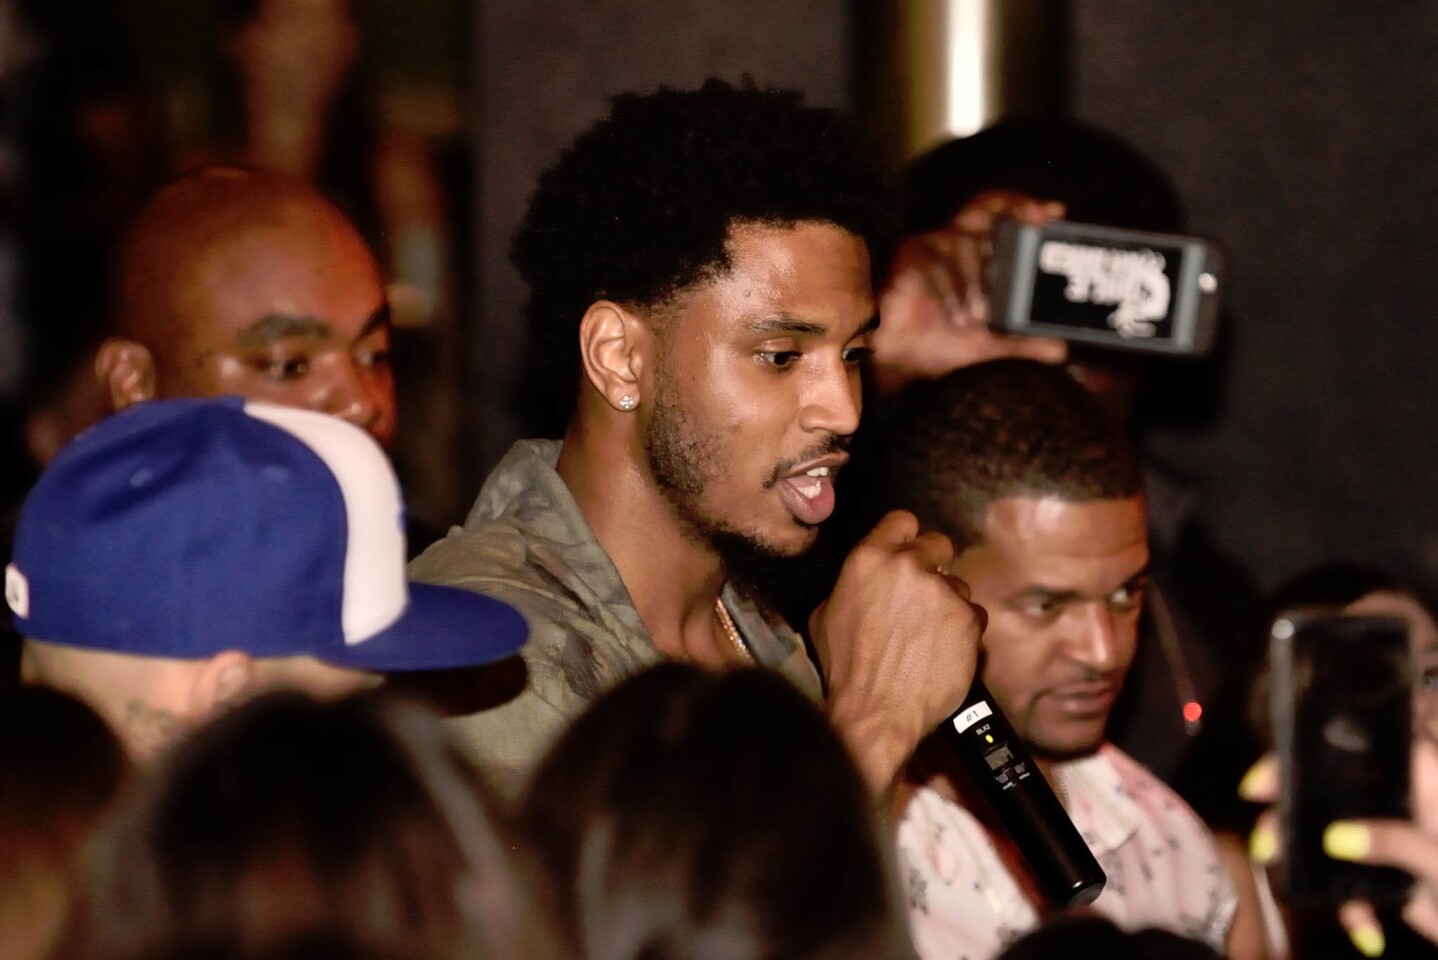 Superstar artist Trey Songz took over the Gaslamp's newest hotspot, Oxford Social Club, on Monday, July 3, 2017. (Jesse Arroyo)